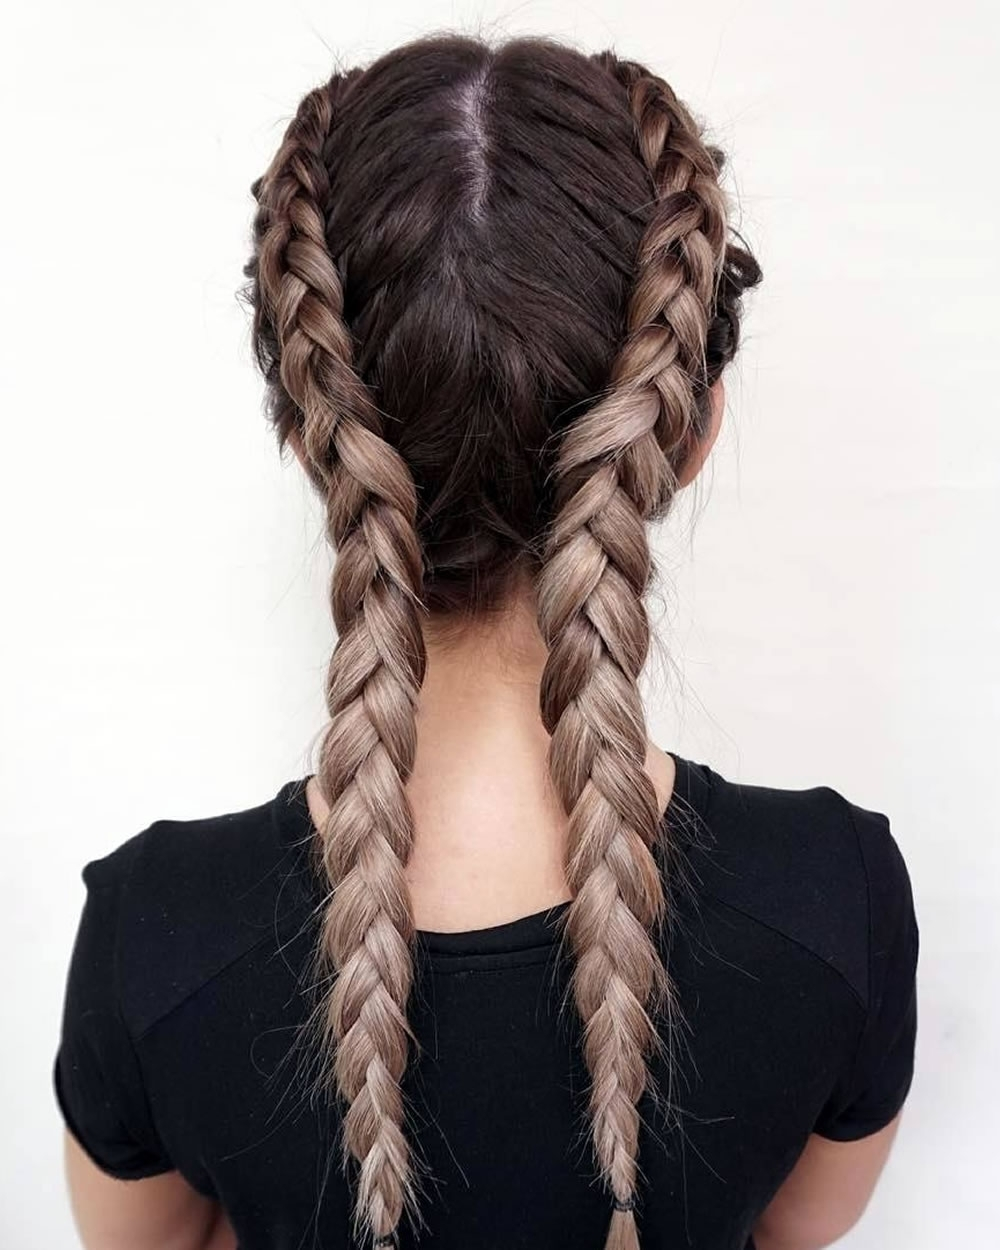 2018 Double French Braids And Ponytails Inside French Braids 2018 (Mermaid, Half Up, Side, Fishtail Etc (View 1 of 15)